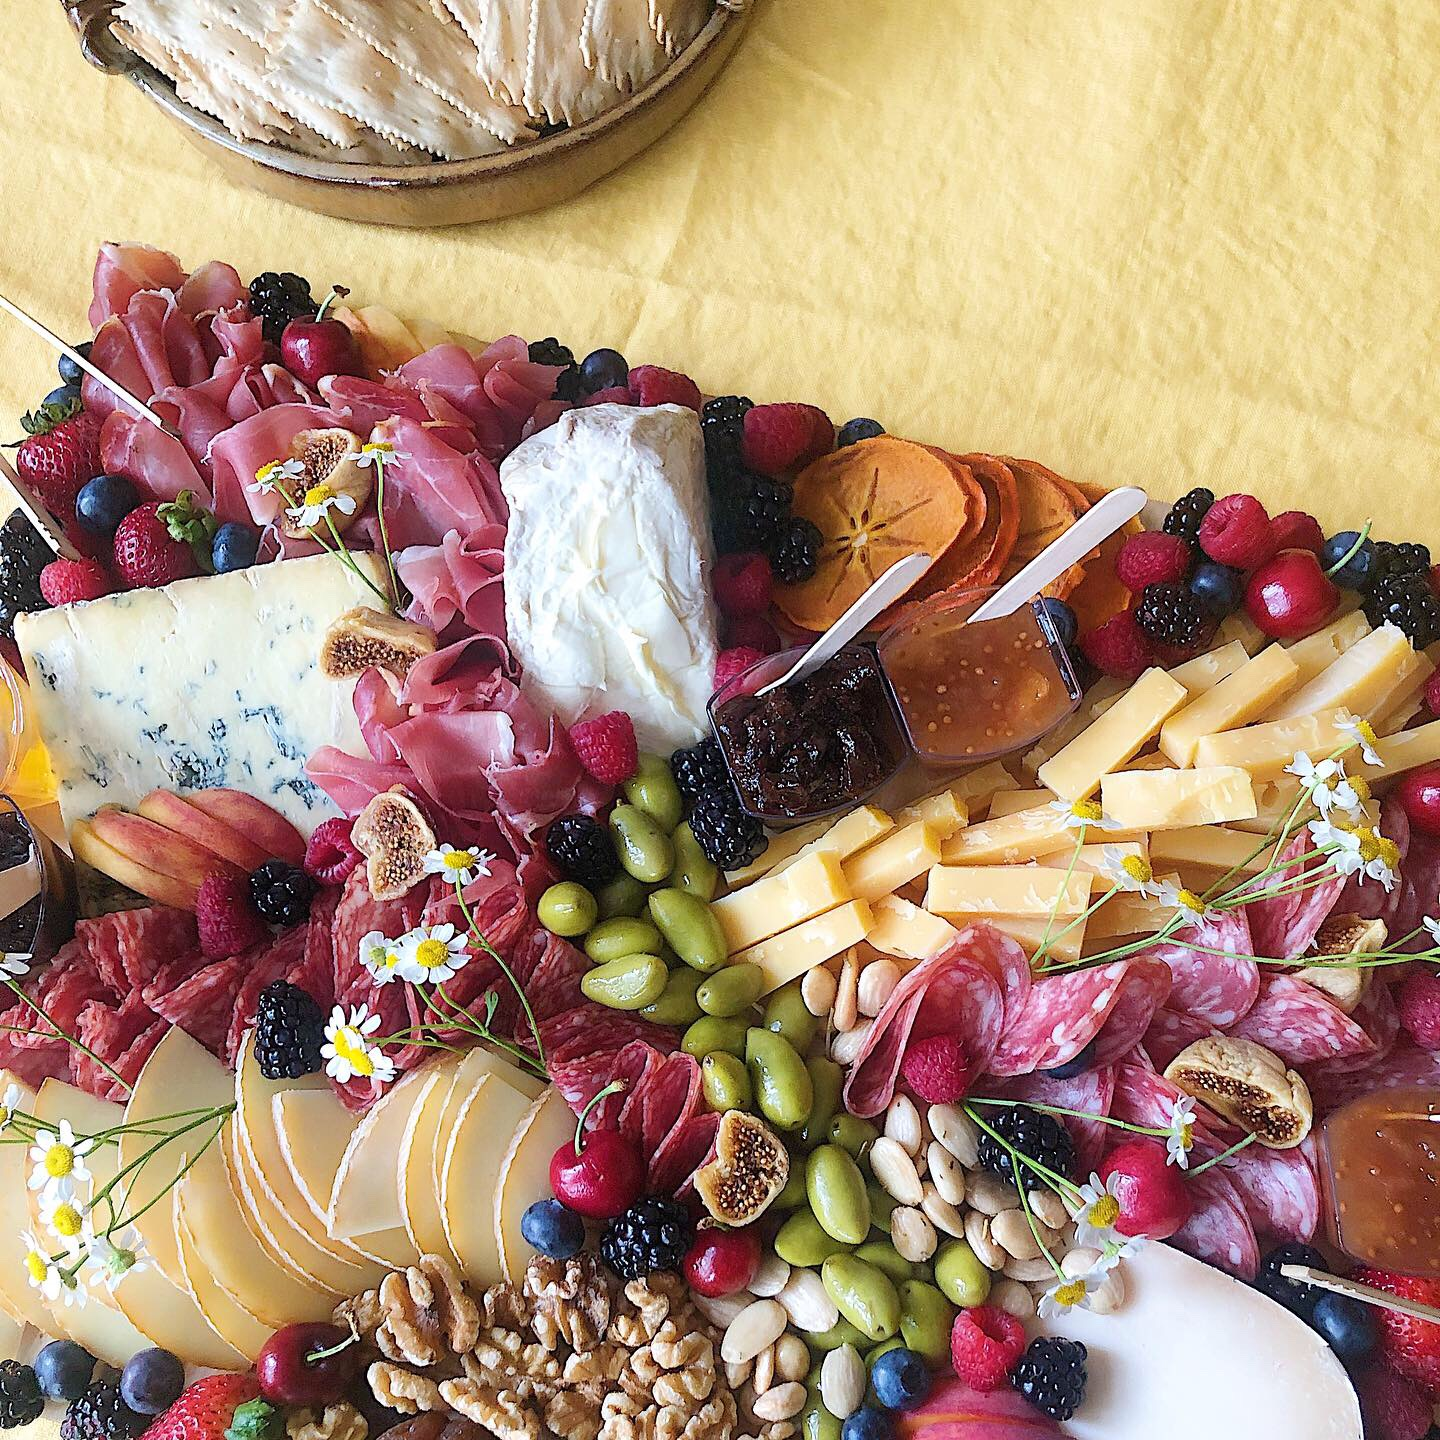 Fruit, Cheese & Meat - A variety of delicious cheeses, cured meats, crackers, fresh and dried fruits, nuts, olives, preserves, and other goodies.Medium (serves 12; original price $125 + $10 delivery):2/month: $243 (save 10%)4/month: $459 (save 15%)Large (serves 24; original price $195 + $10 delivery):2/month: $369 (save 10%)4/month: $697 (save 15%)